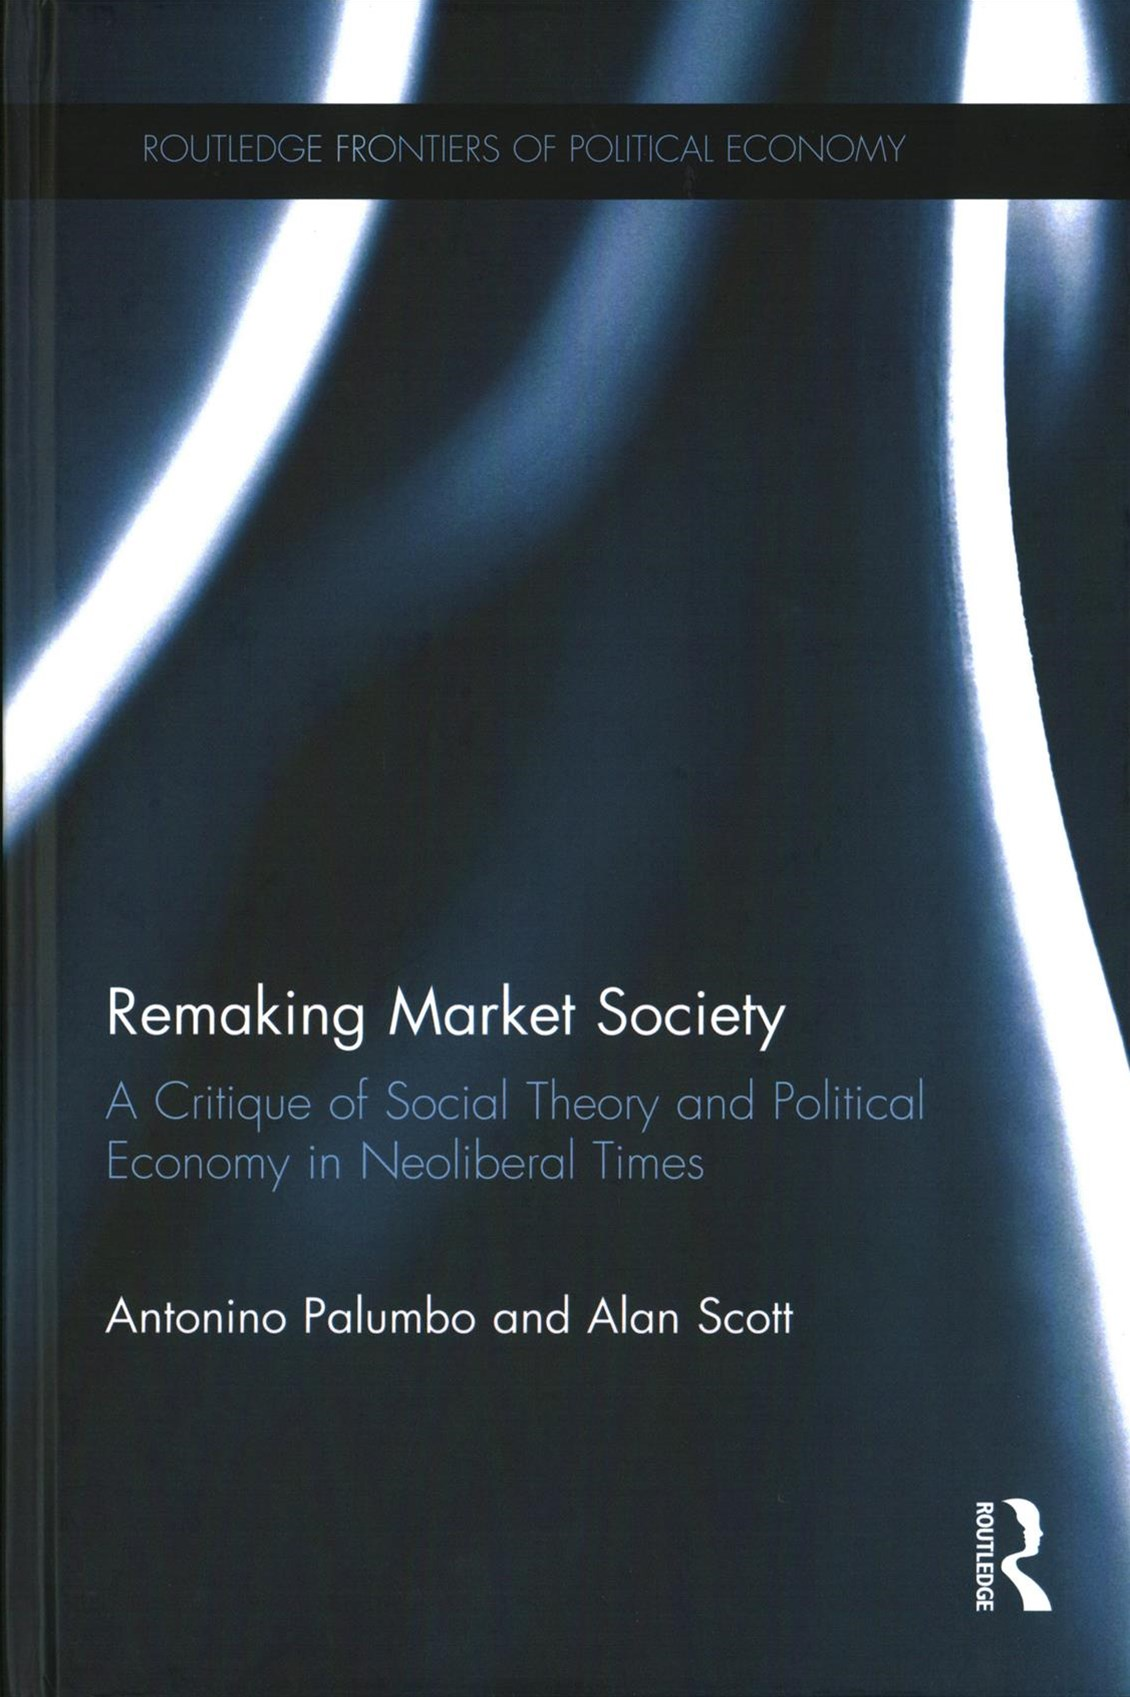 Remaking Market Society